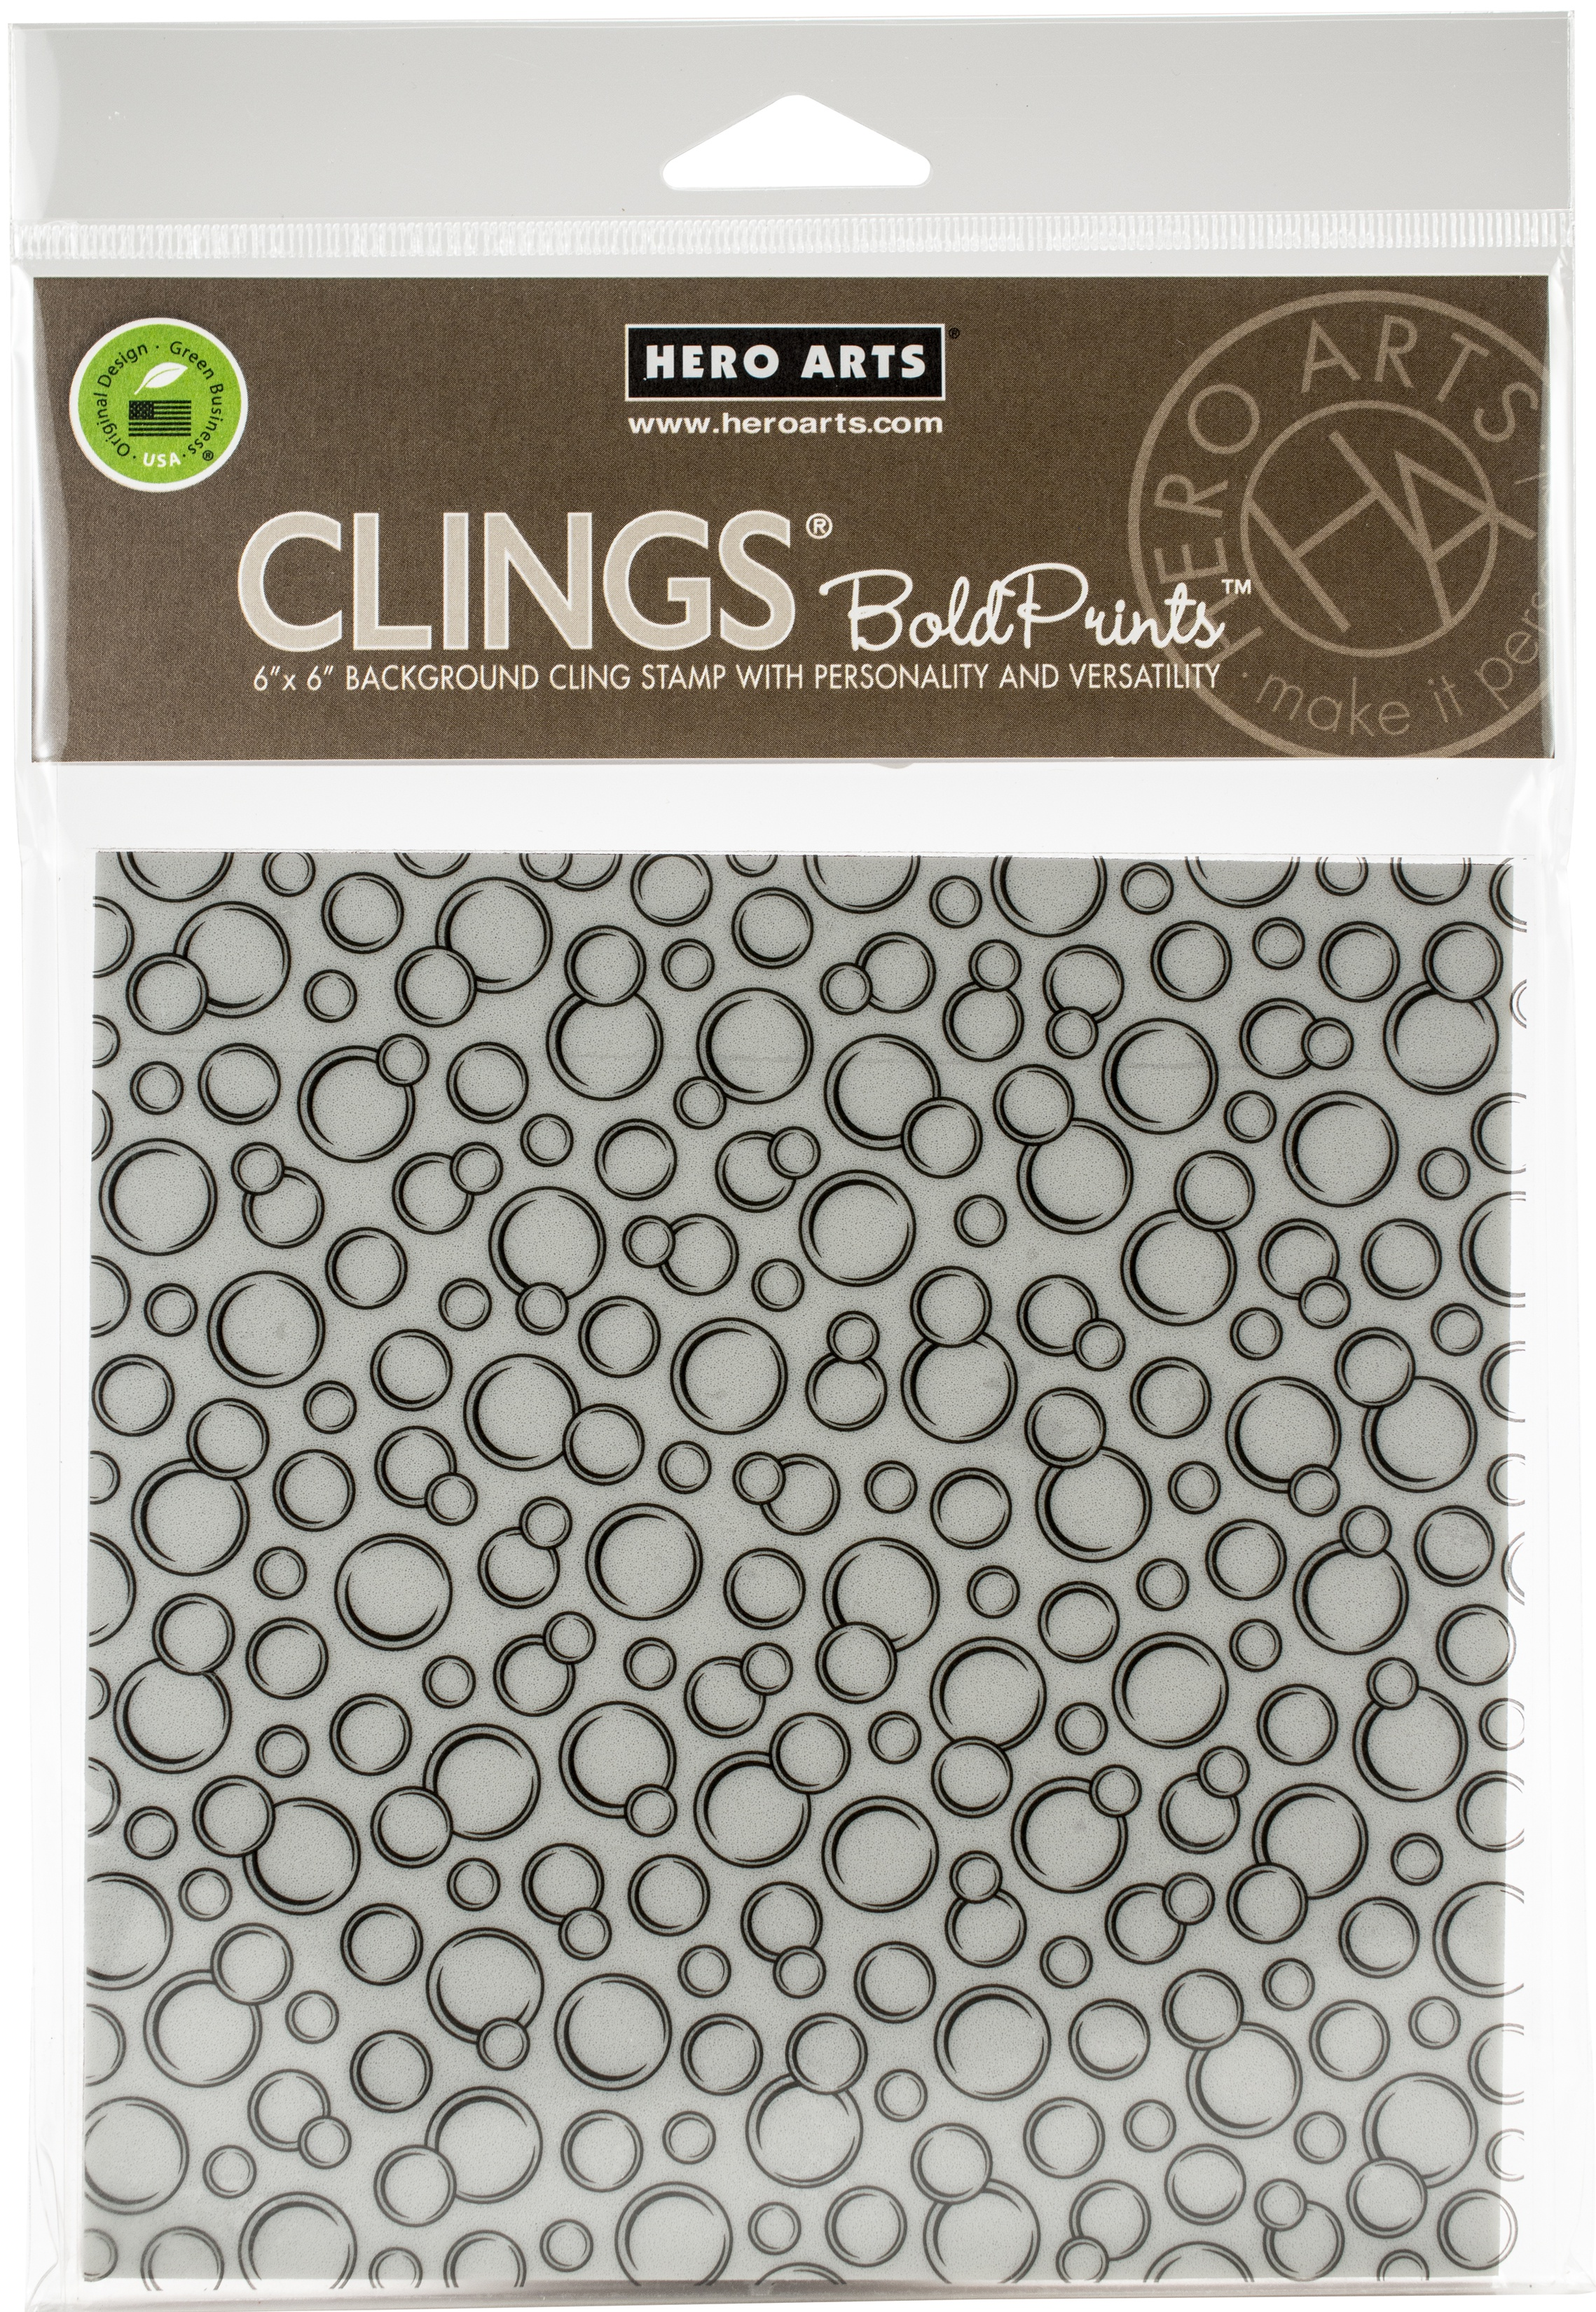 Hero Arts Cling Stamps 6X6-Bubbles Bold Prints